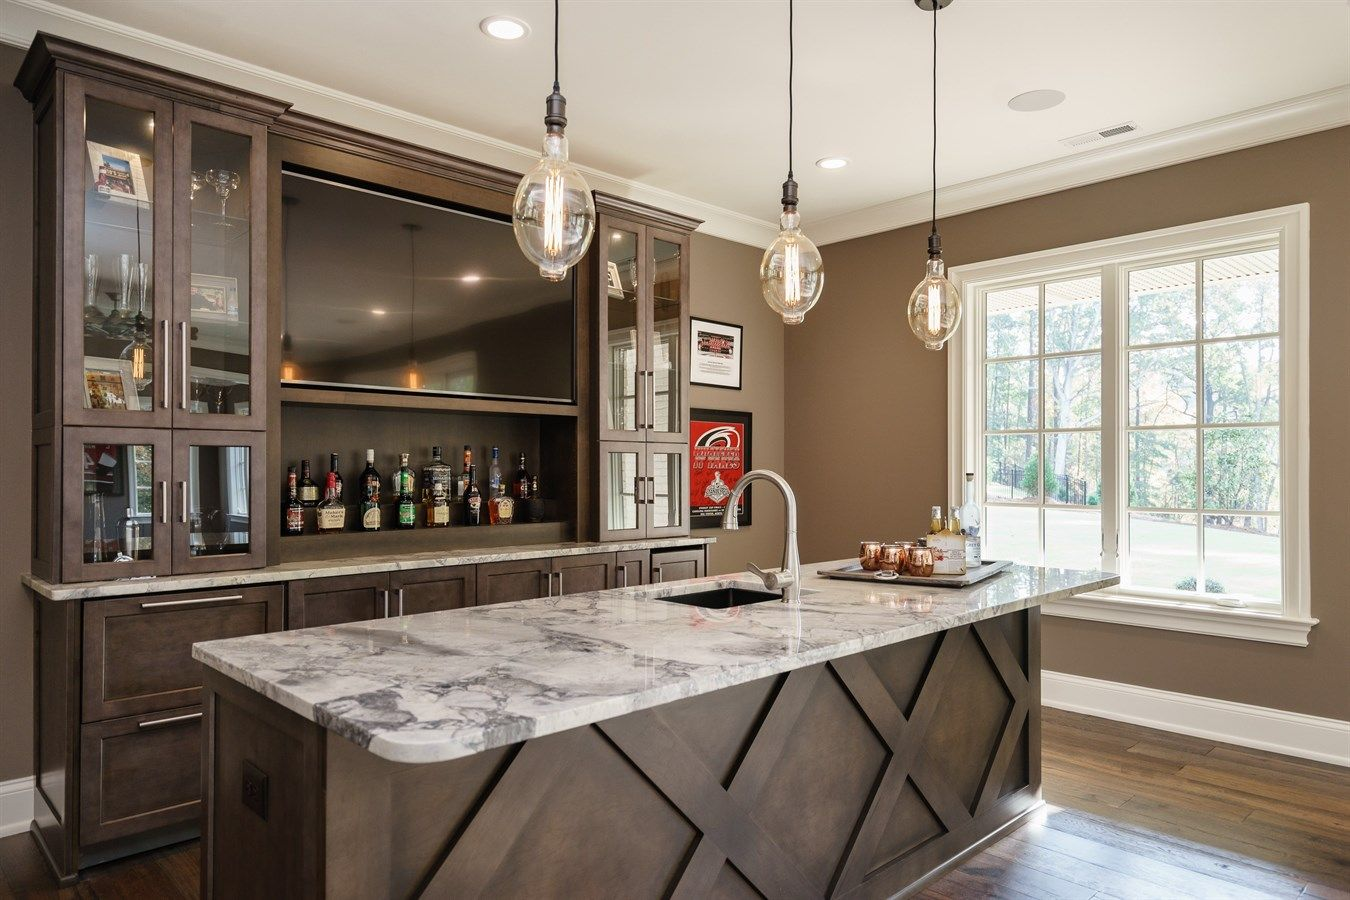 Wet Bar Basement Bar Designs Bars For Home Home Bar Designs